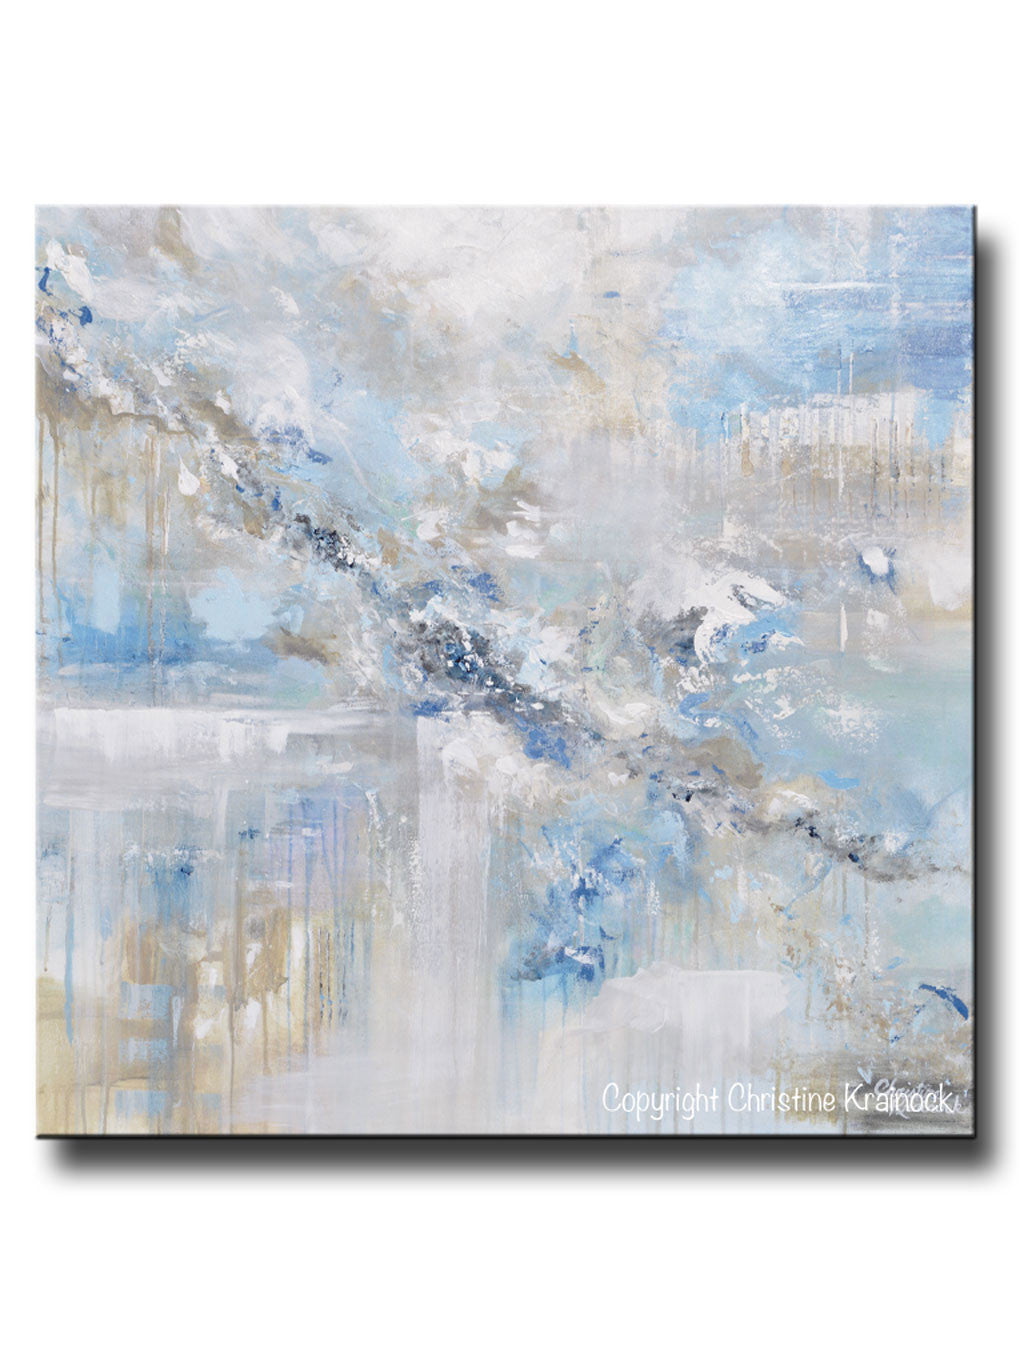 ORIGINAL Art Abstract Painting Blue White Grey Taupe Modern Textured Coastal Wall Art Decor 36x36   sc 1 st  Contemporary Art by Christine & SHOP Abstract Paintings Original Modern Canvas Wall Art u2013 Page 3 ...